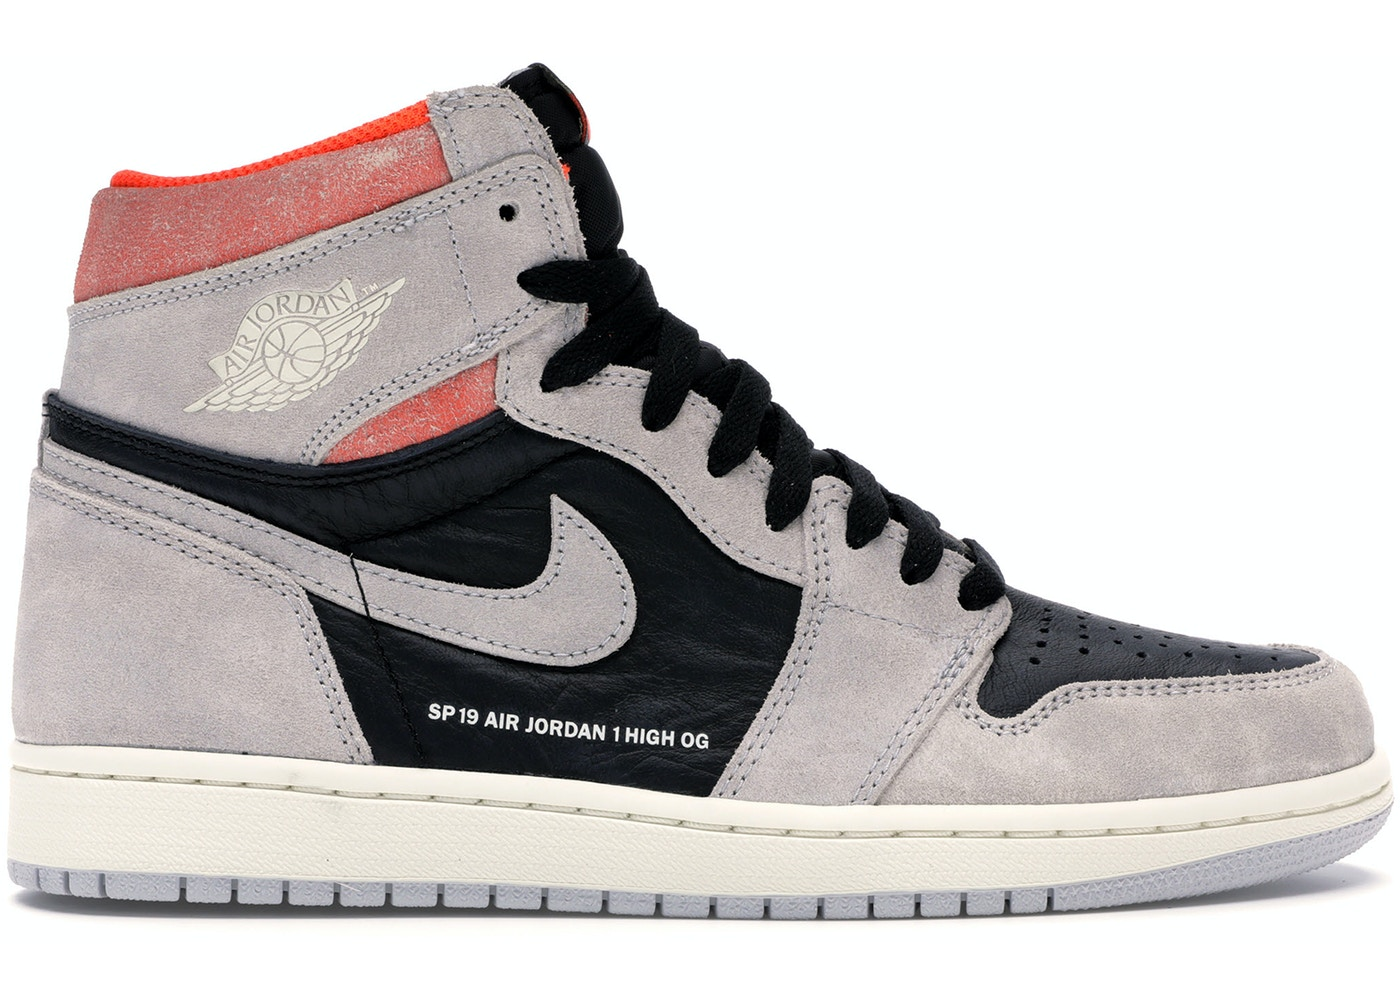 buy popular f47de 44ec8 Jordan 1 Retro High Neutral Grey Hyper Crimson - 555088-018